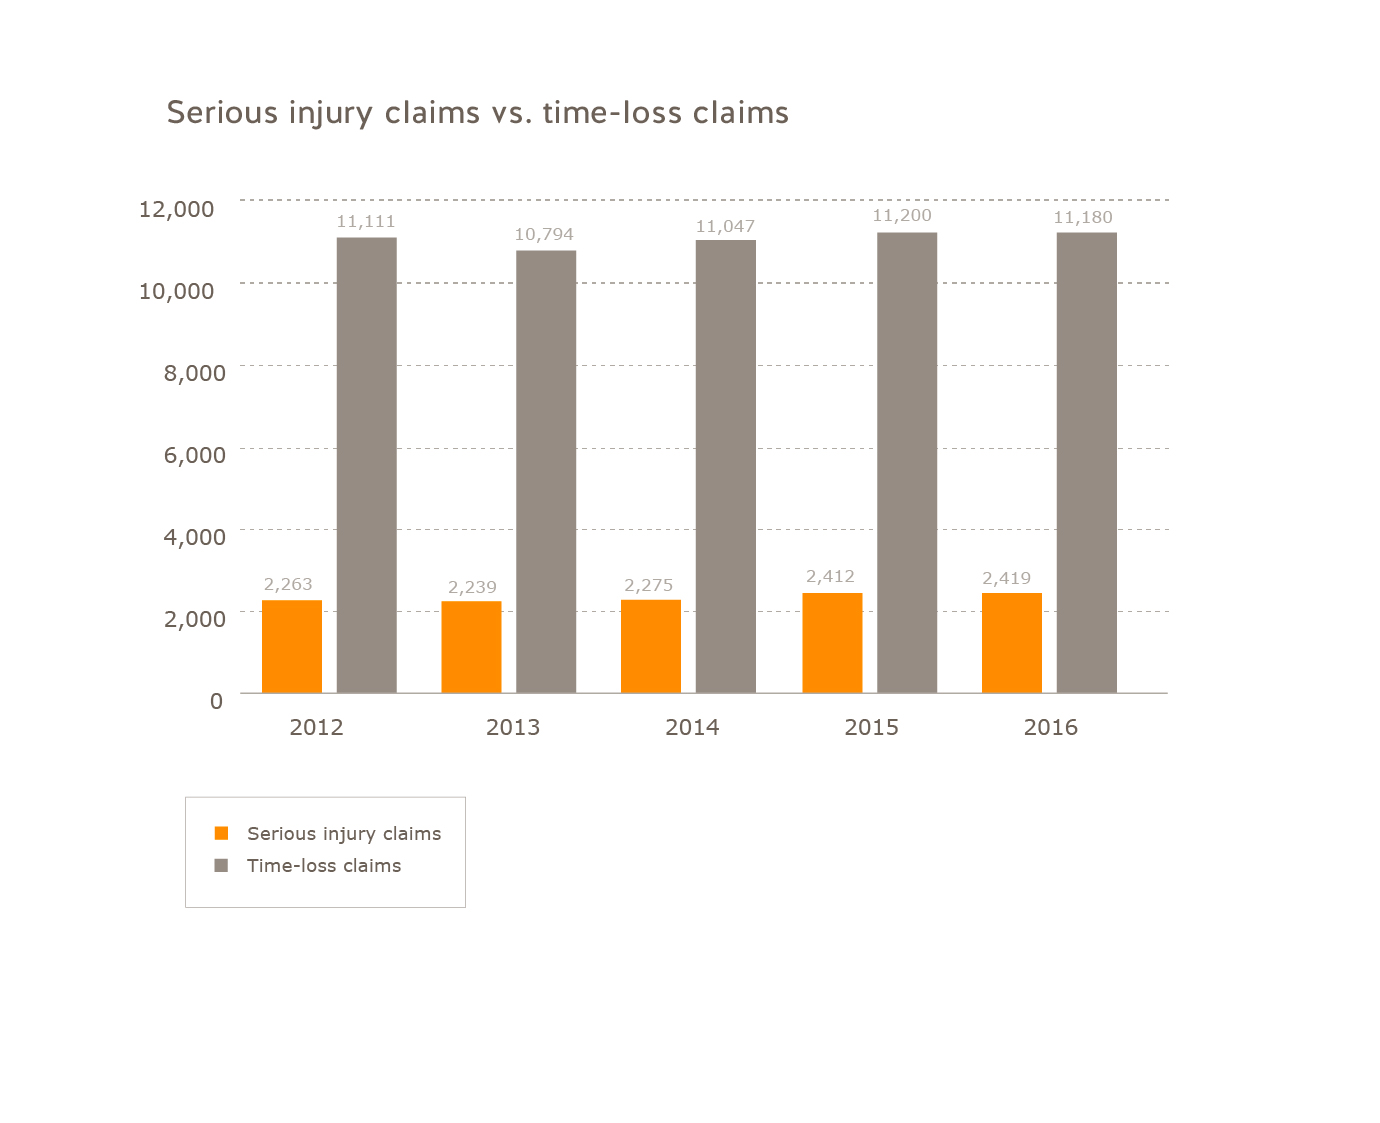 Small business serious injury claims vs. time-loss claims for 2012 to 2016. Serious injury claims: 2012=2263; 2013=2239; 2014=2275; 2015=2412; 2016=2419. Time-loss claims: 2012=11111; 2013=10794; 2014=11047; 2015=11200; 2016=11180